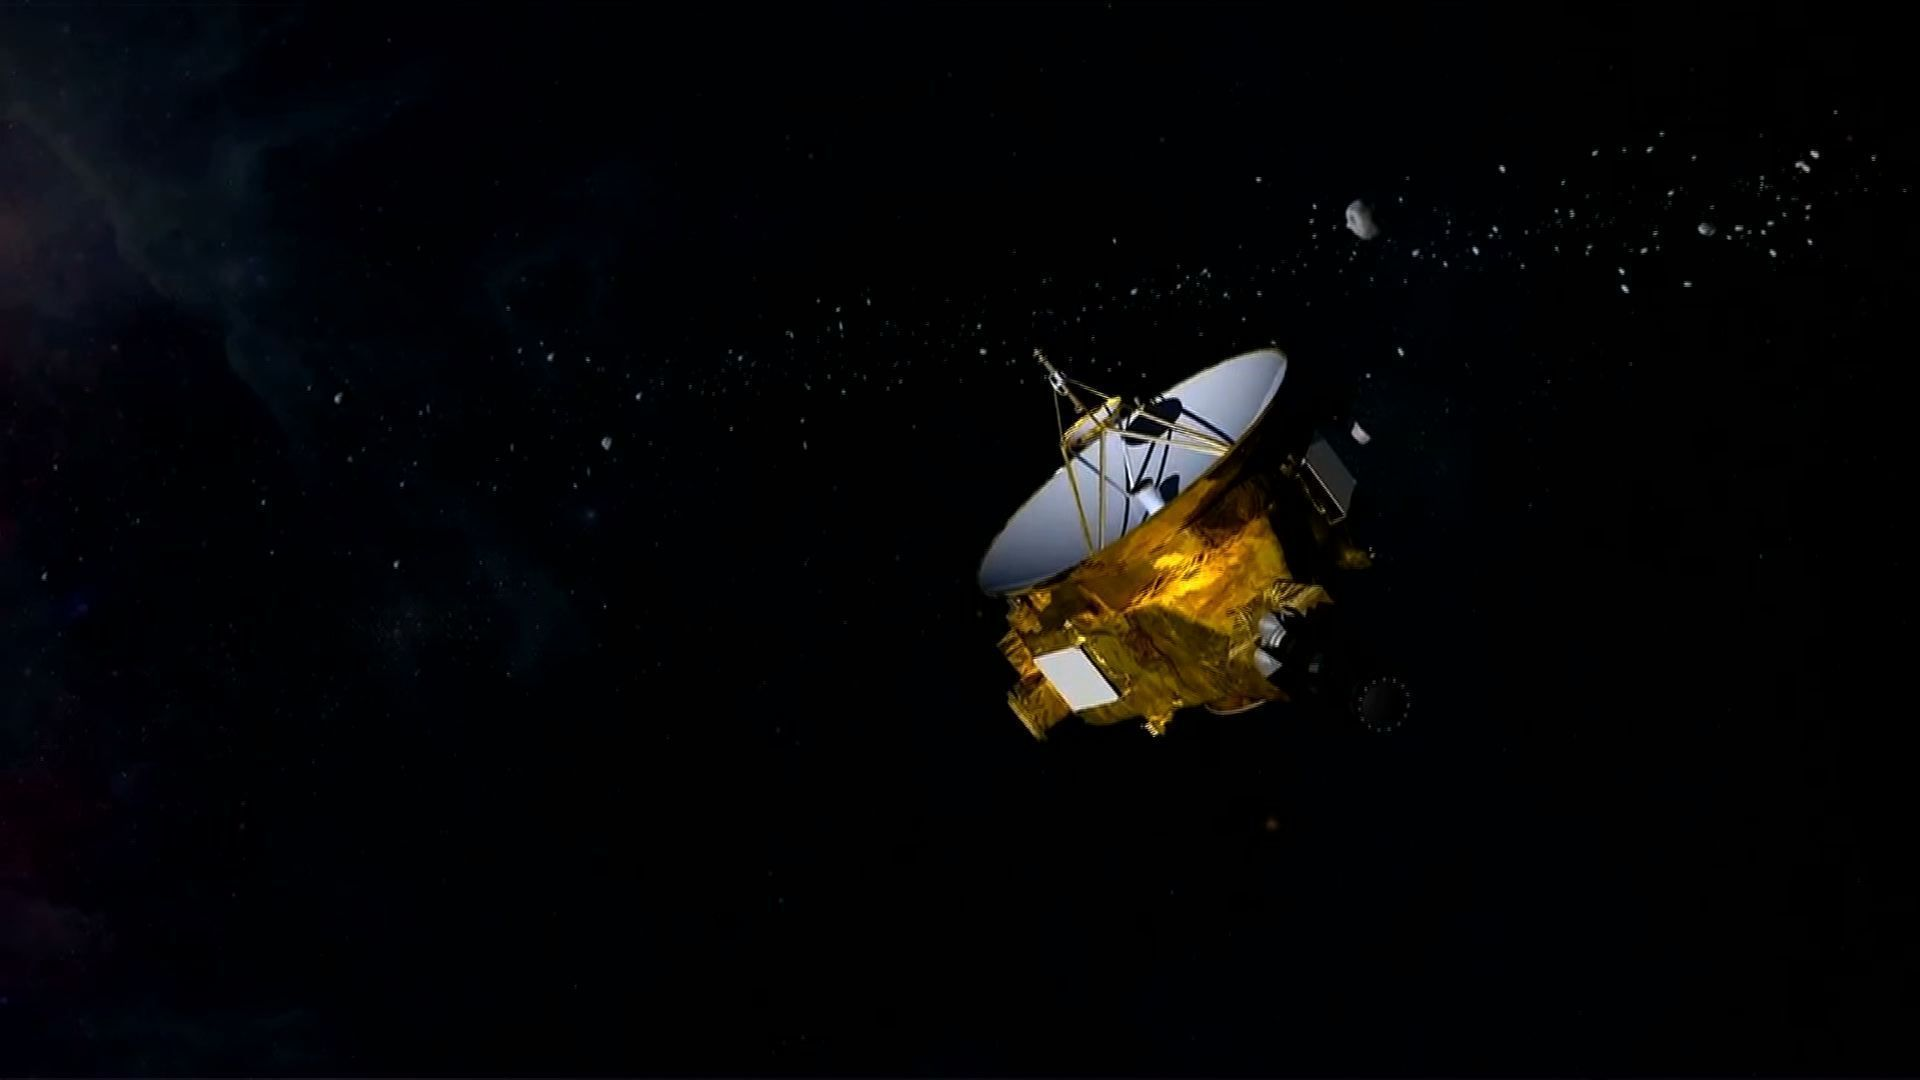 nasa new horizons probe - photo #15